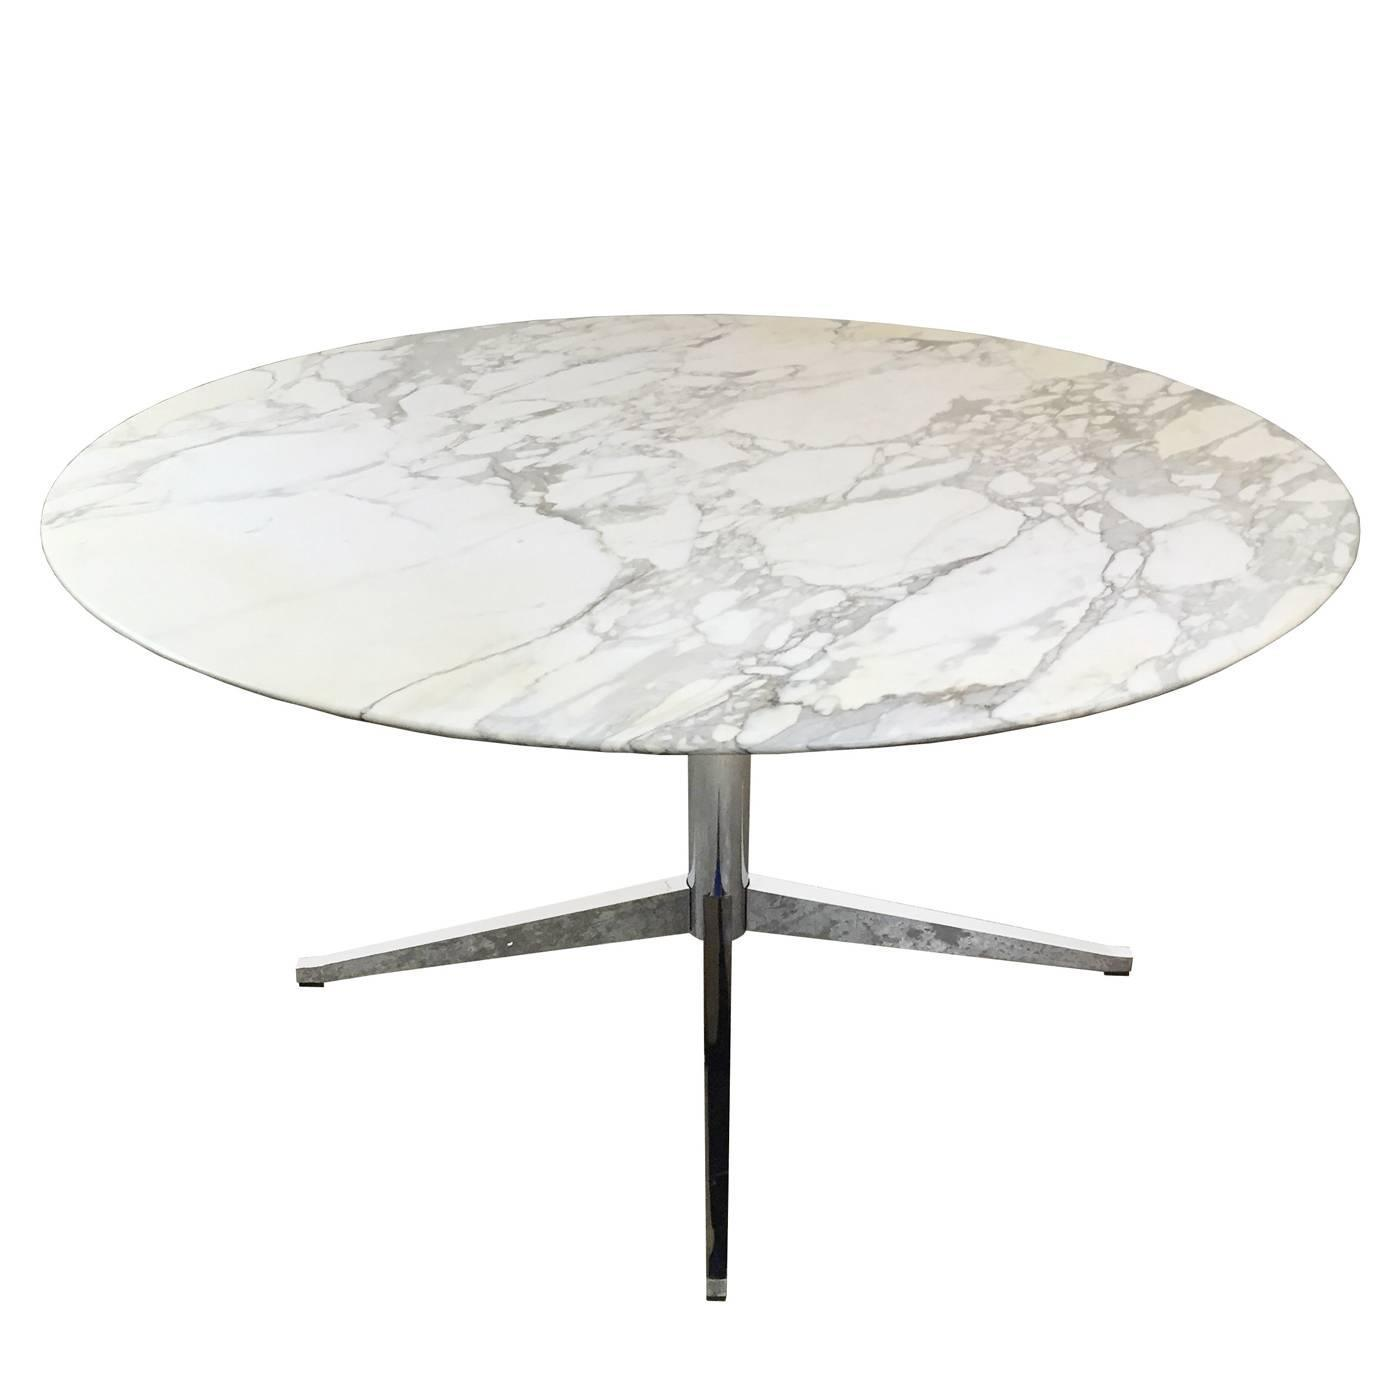 Round Carrara Marble Dining Conference Table By Florence Knoll At